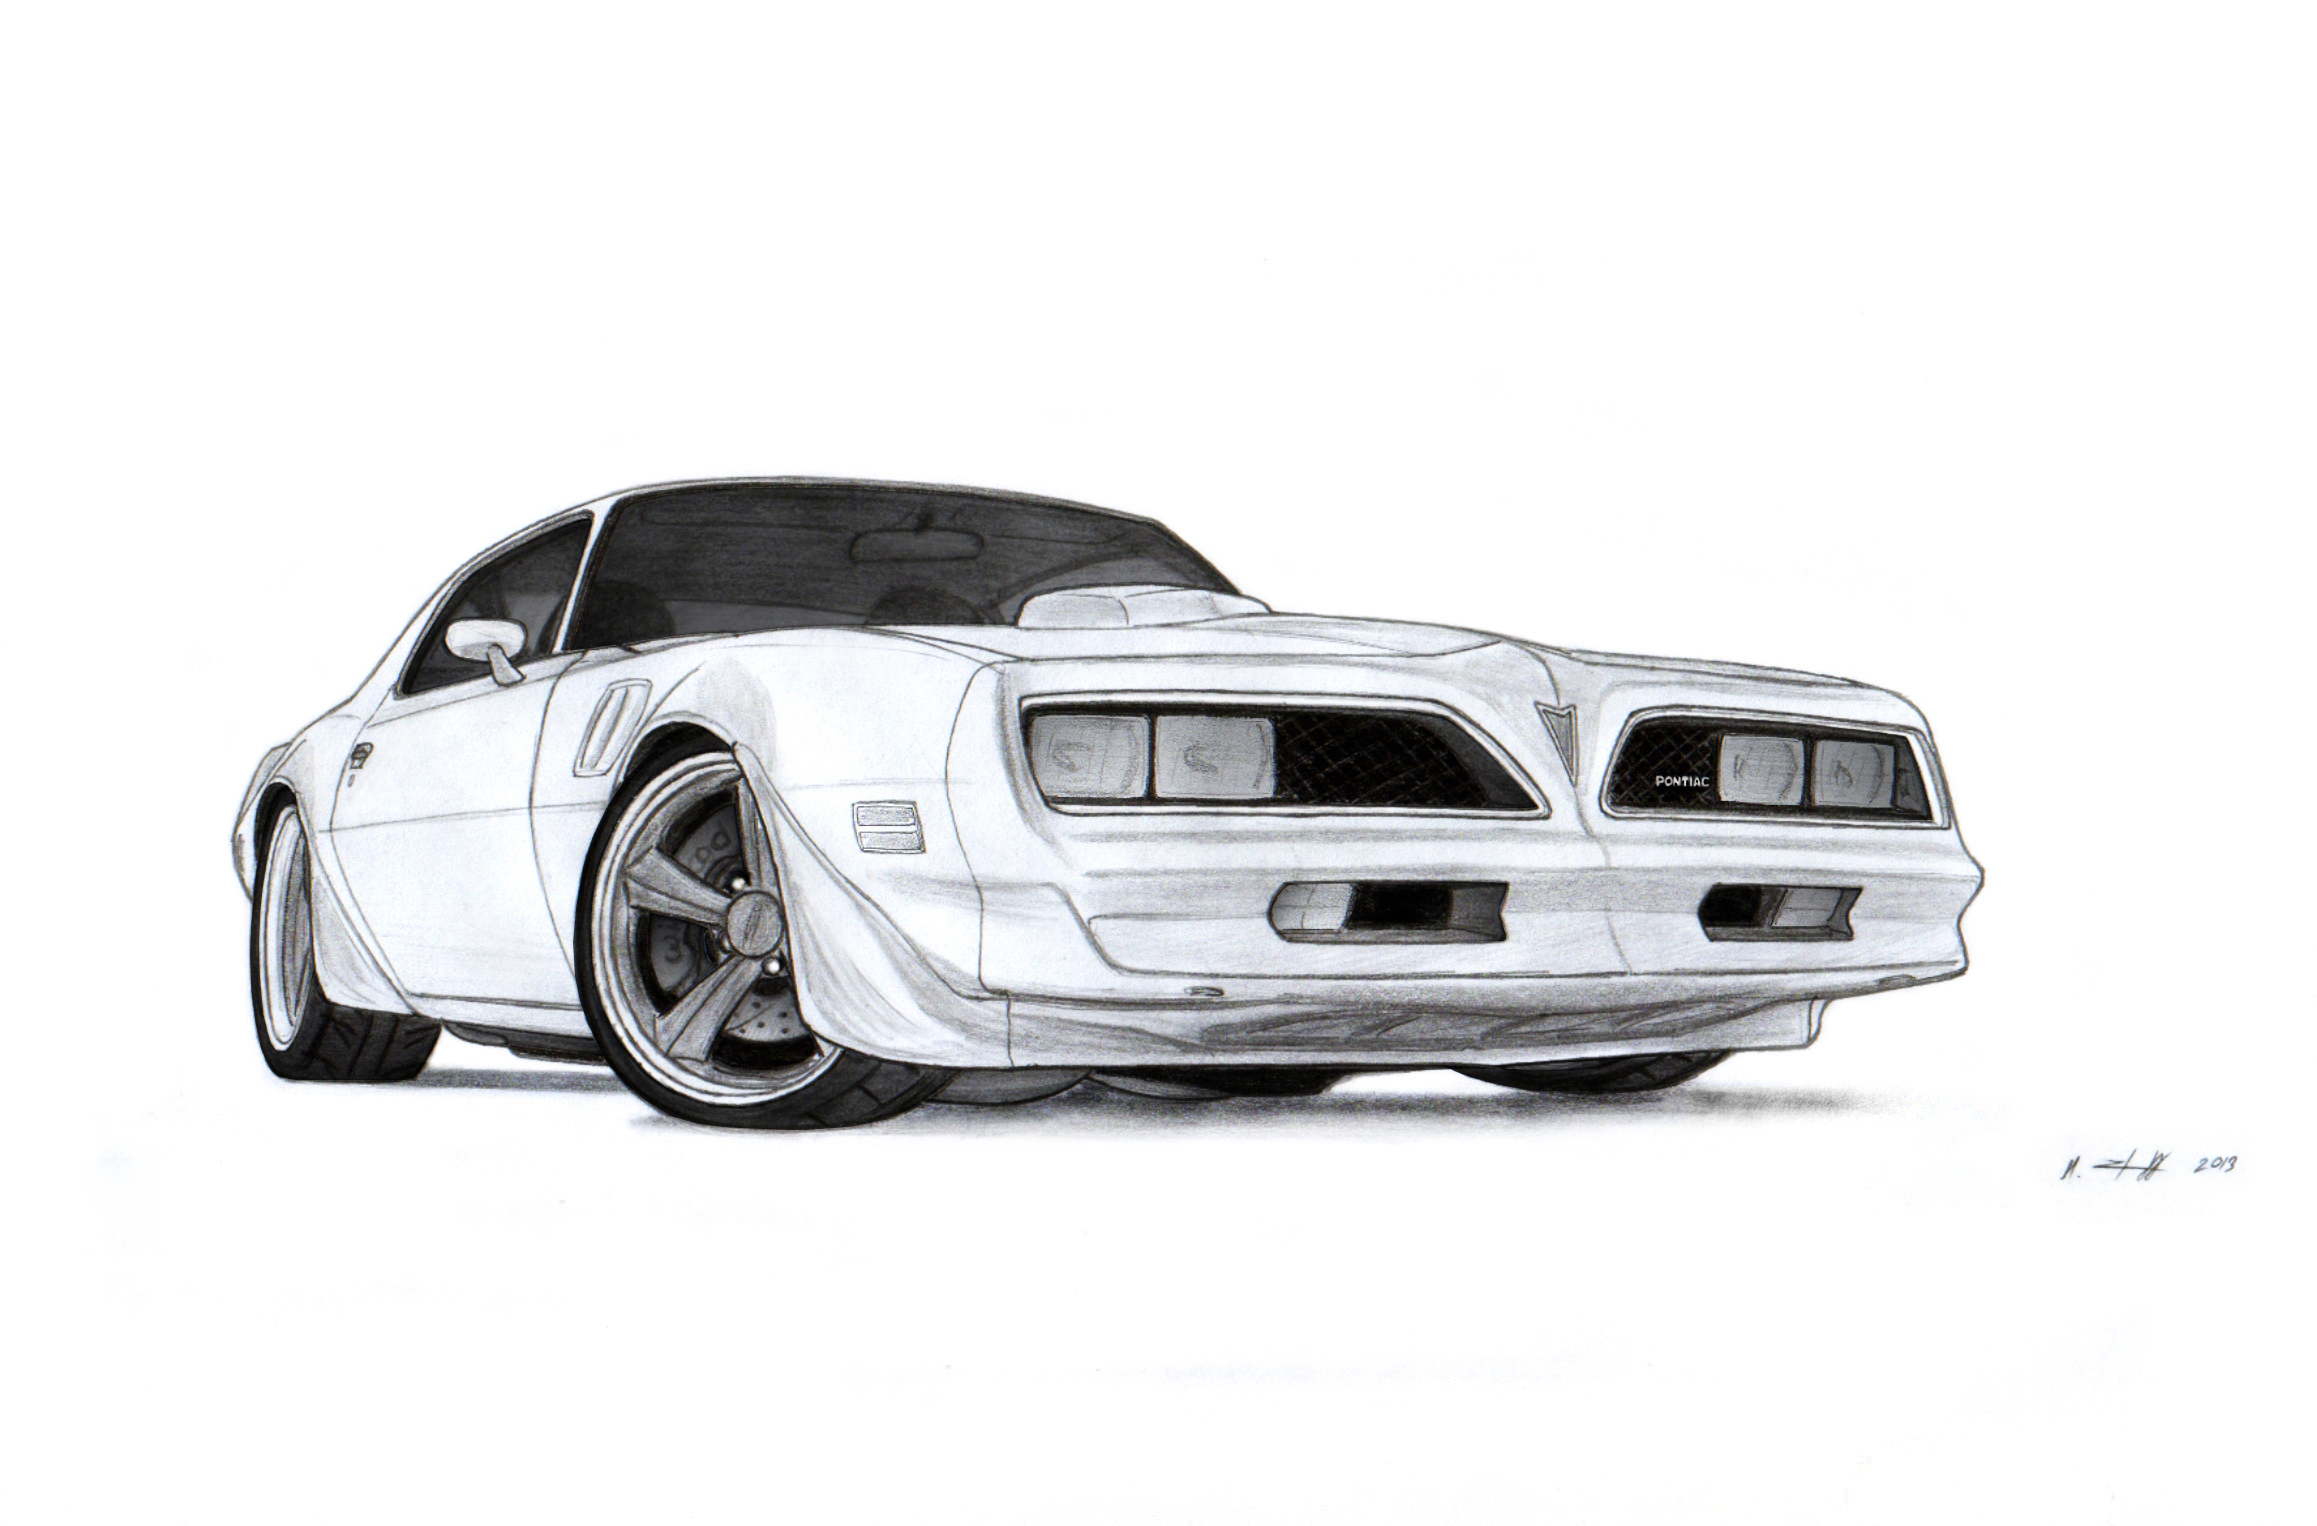 1978 Pontiac Firebird Trans Am Drawing By Vertualissimo On